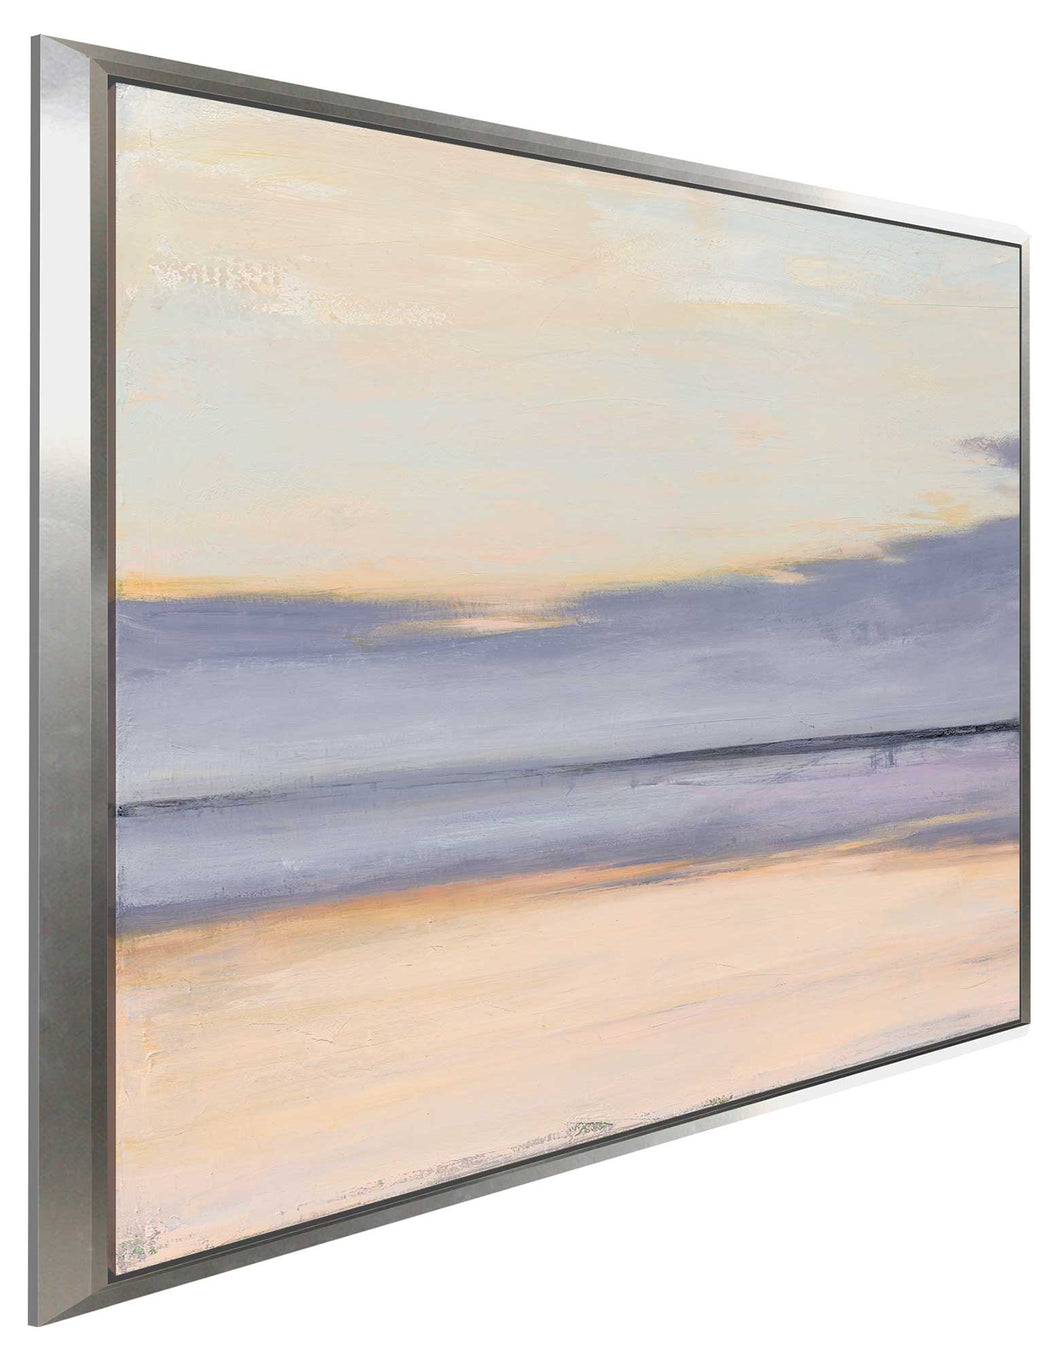 Shore II by Julia Purinton Print on Canvas in Floating Frame Sea and Shore,Purple art,Square Shape,All Floating Canvas,Julia Purington